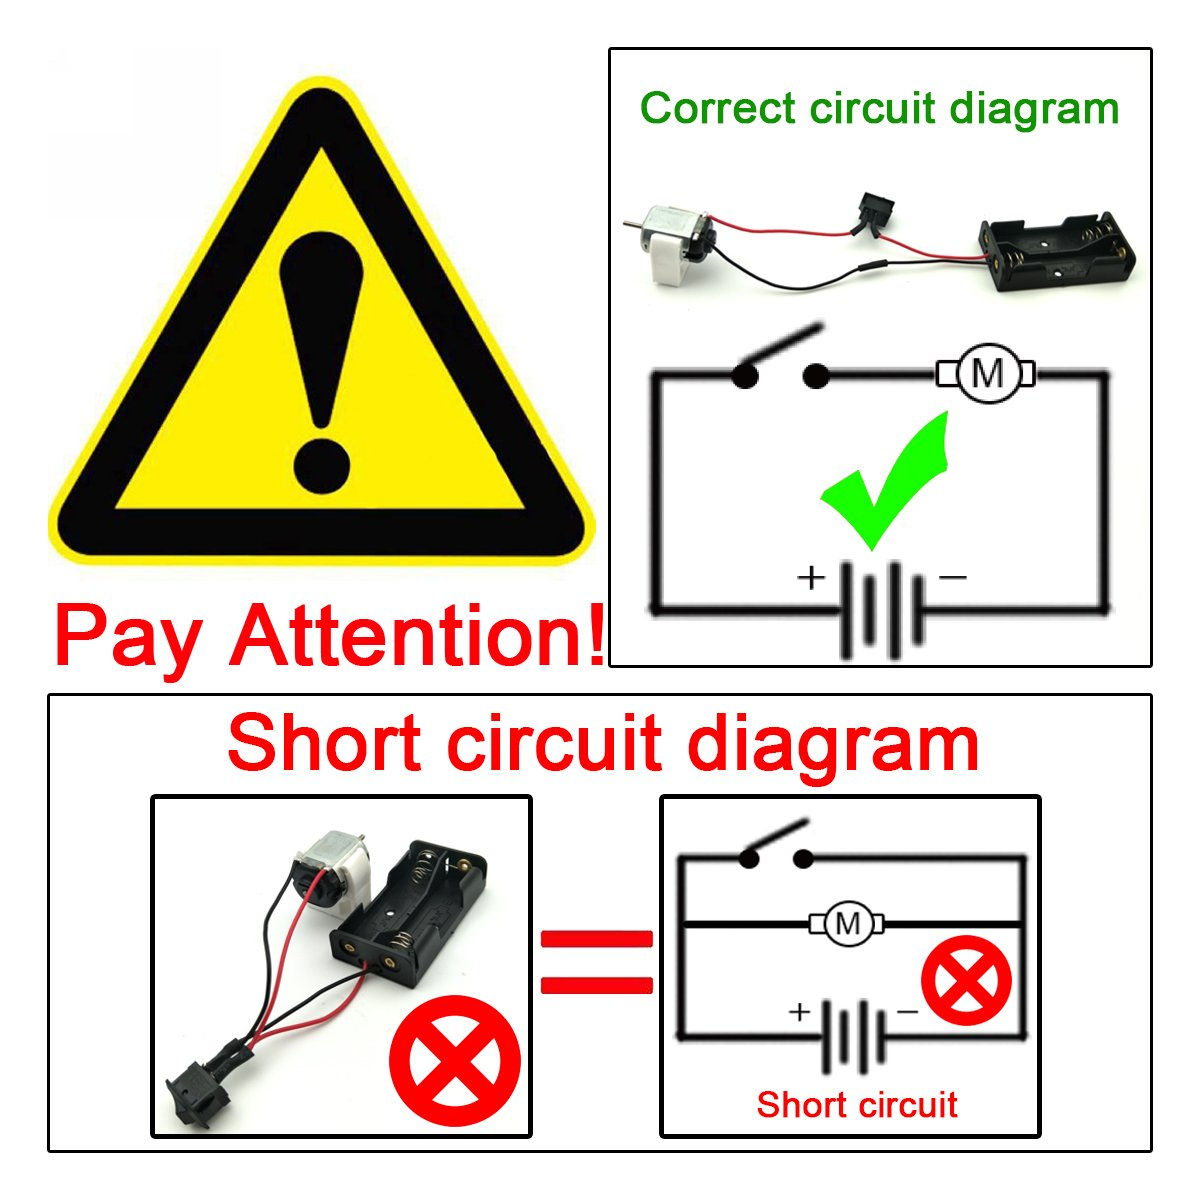 Eudax 15set Rectangular Dc Motor Mini Electric 15 Rocker Switch Wiring Diagram Get Free Image About 3v 24000rpm With 98 Lead Wires 2 X 15v Aa Battery Holder Case And